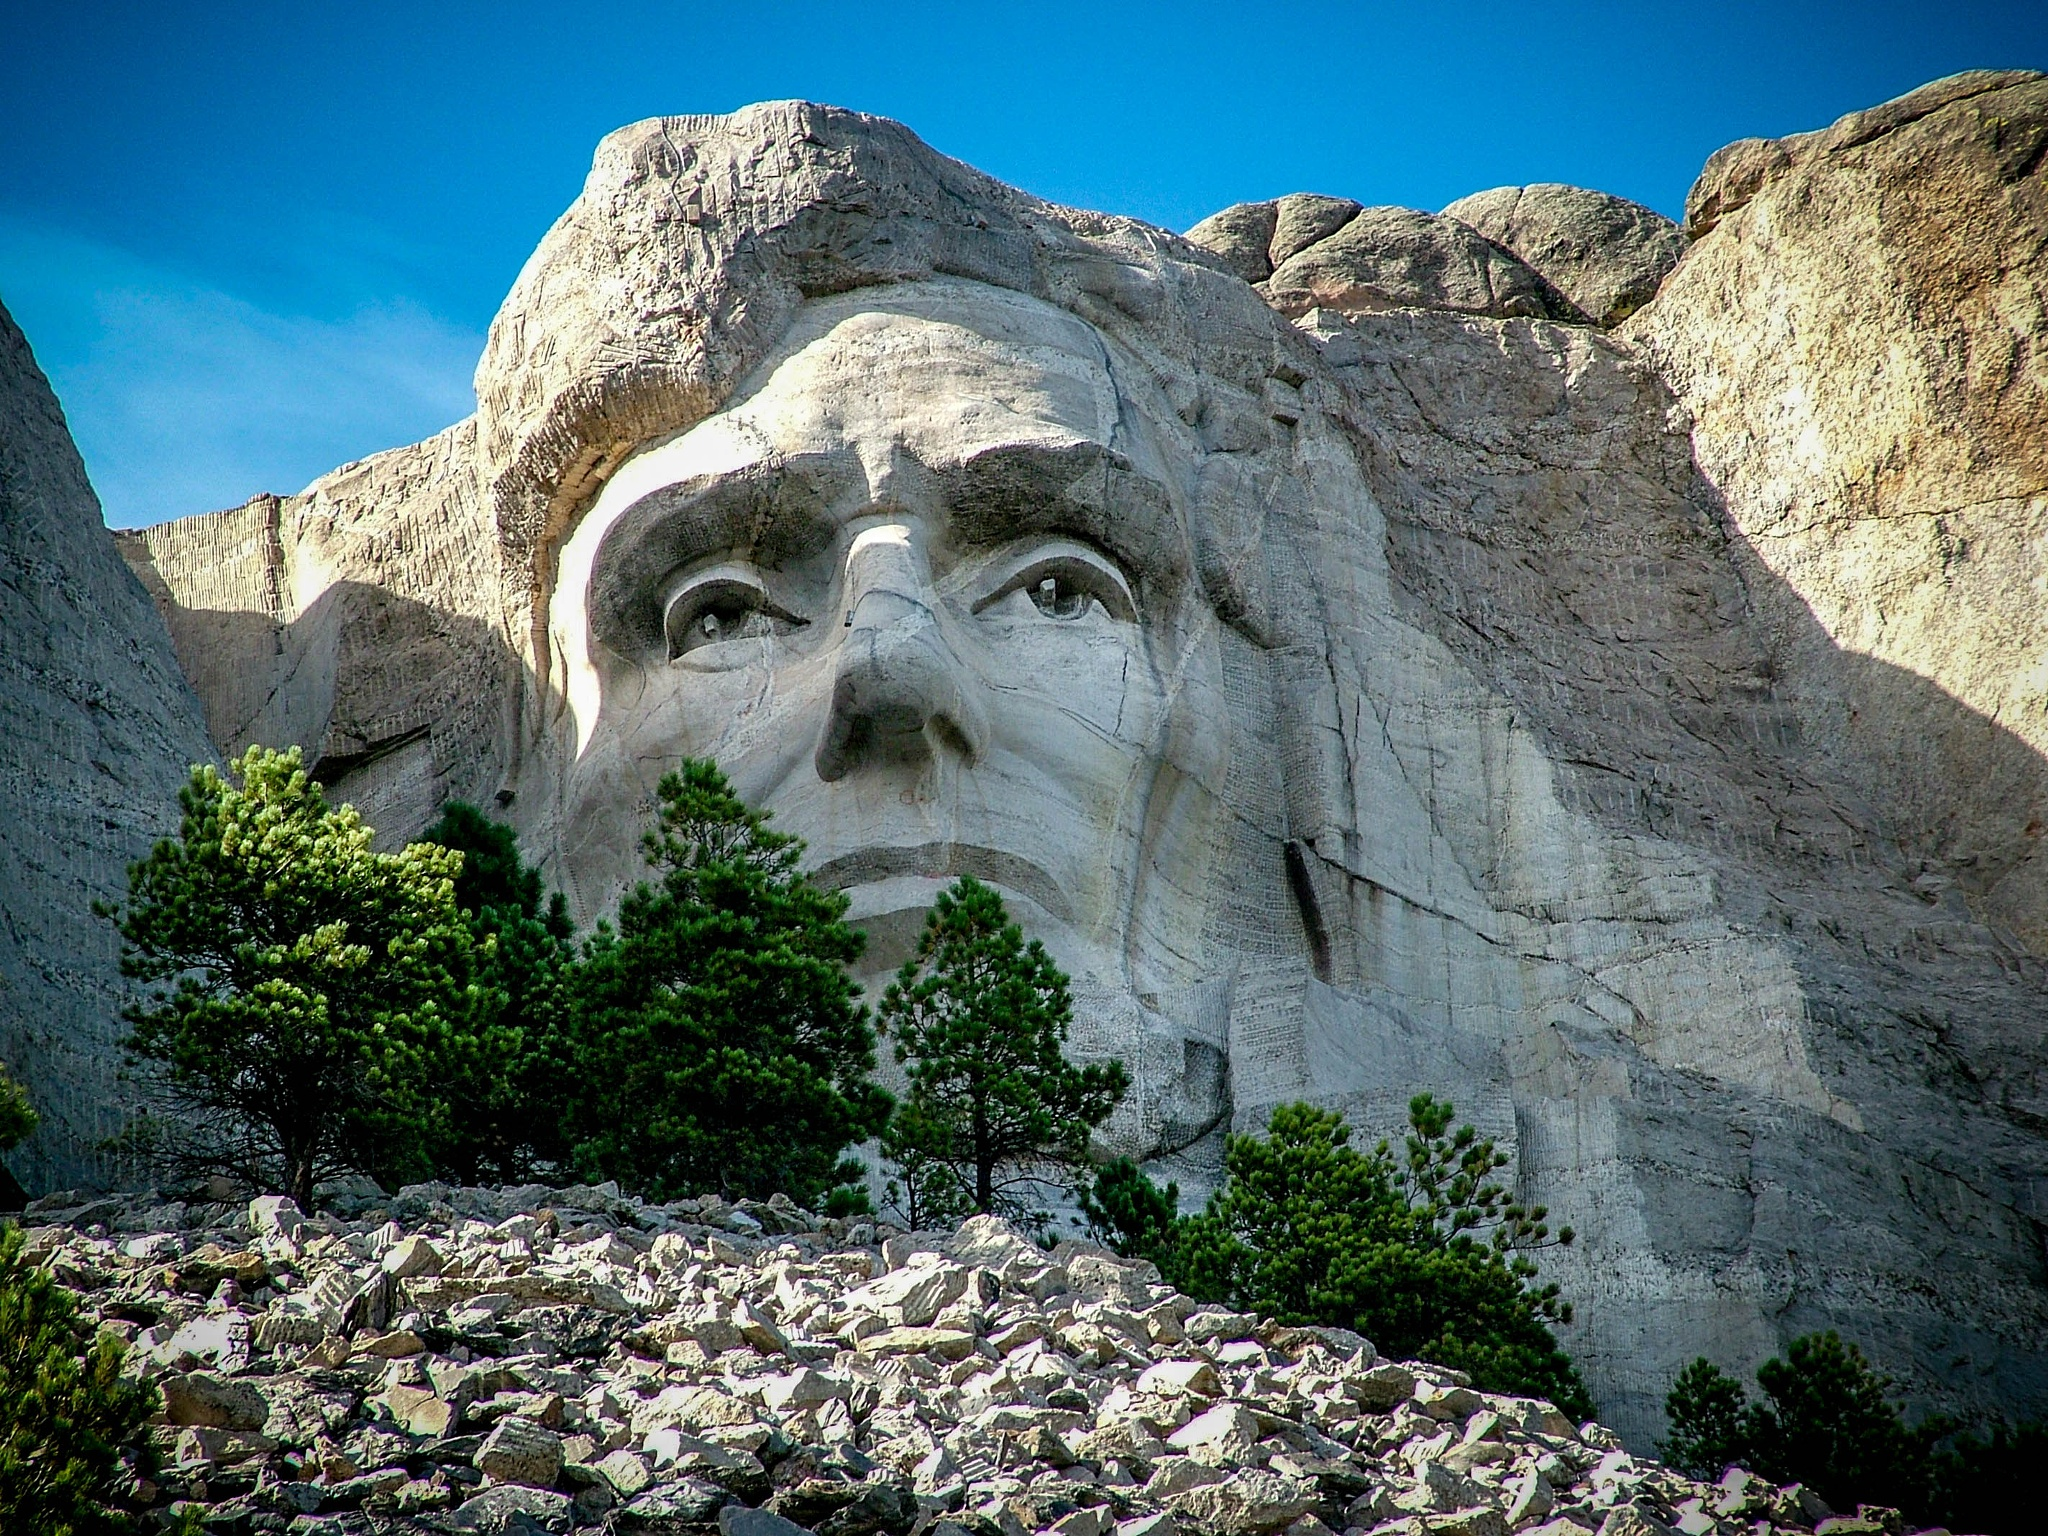 Mount Rushmore by Richy